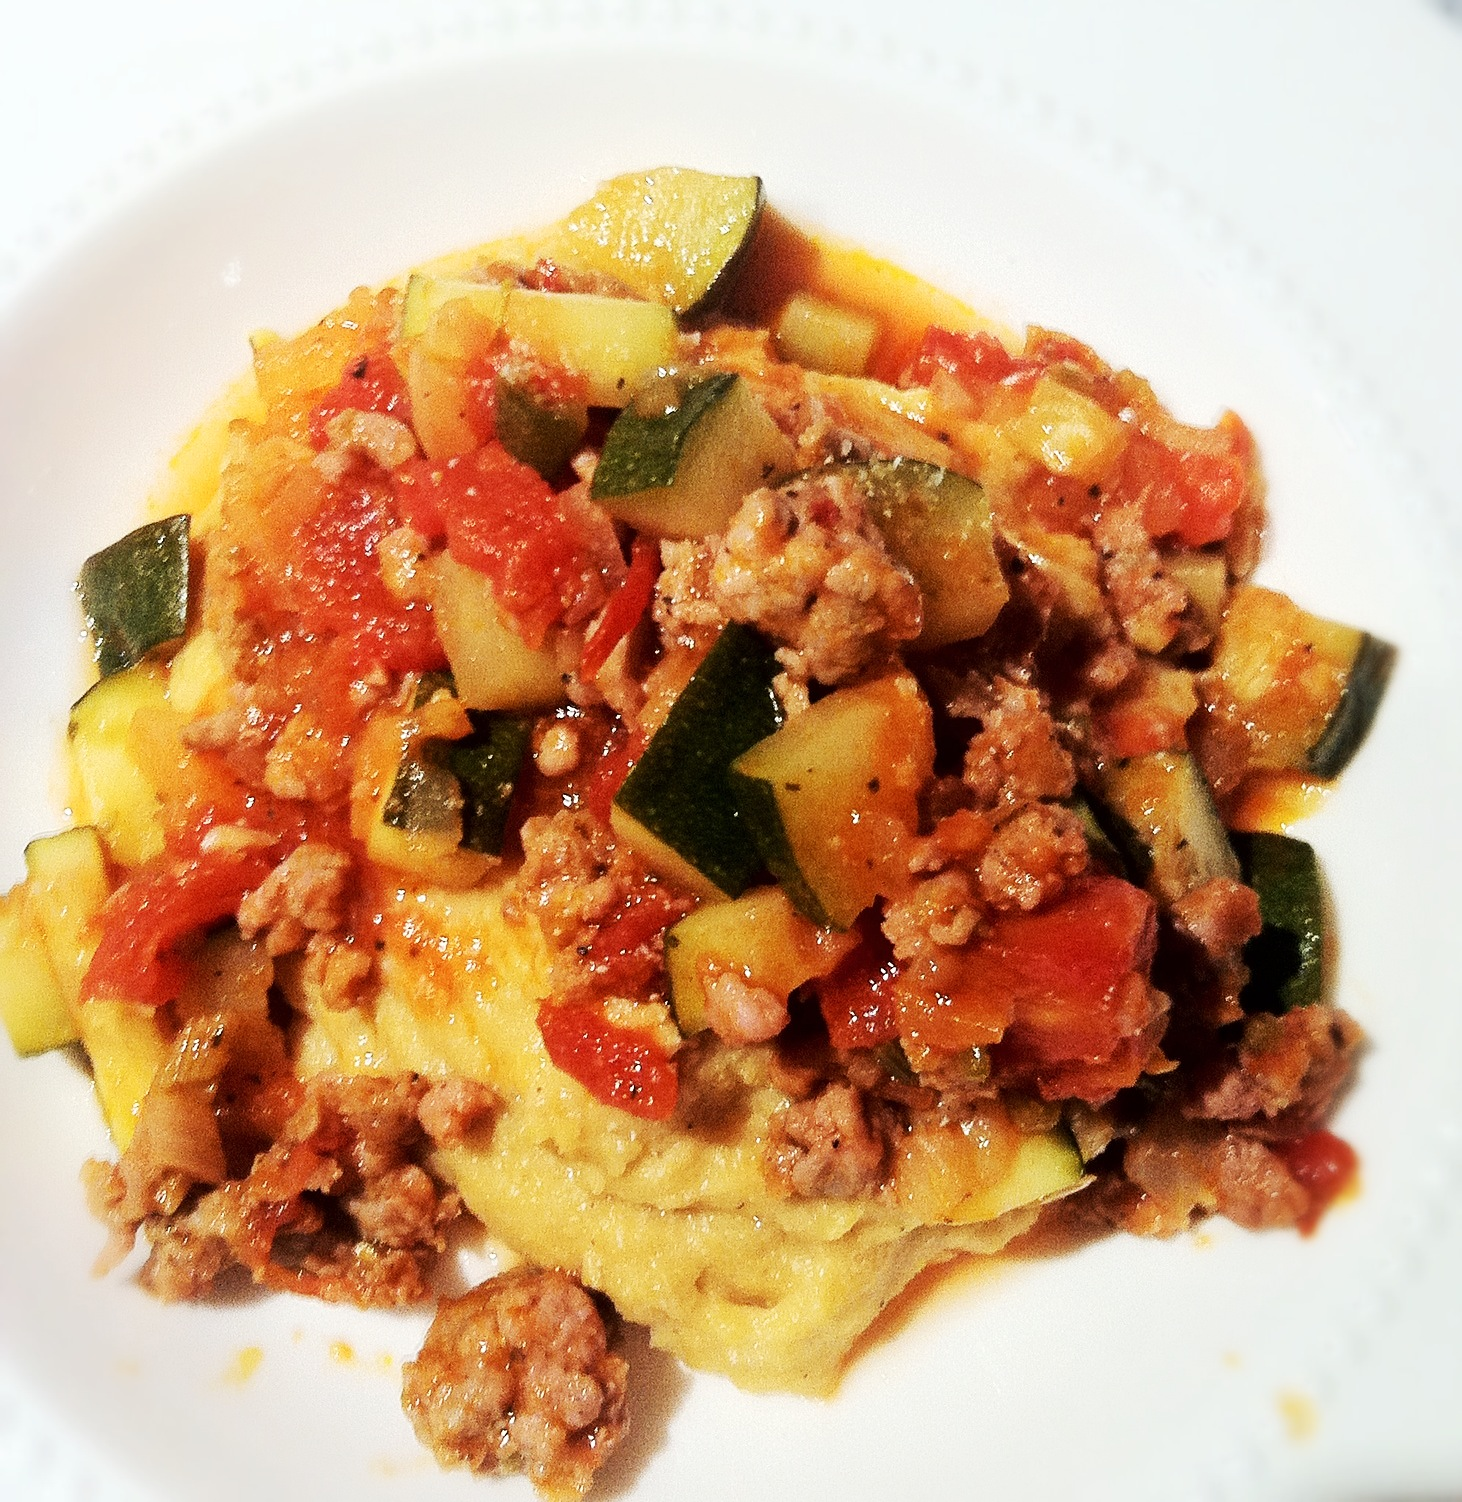 Creamy Polenta Alla Bittman Recipes — Dishmaps